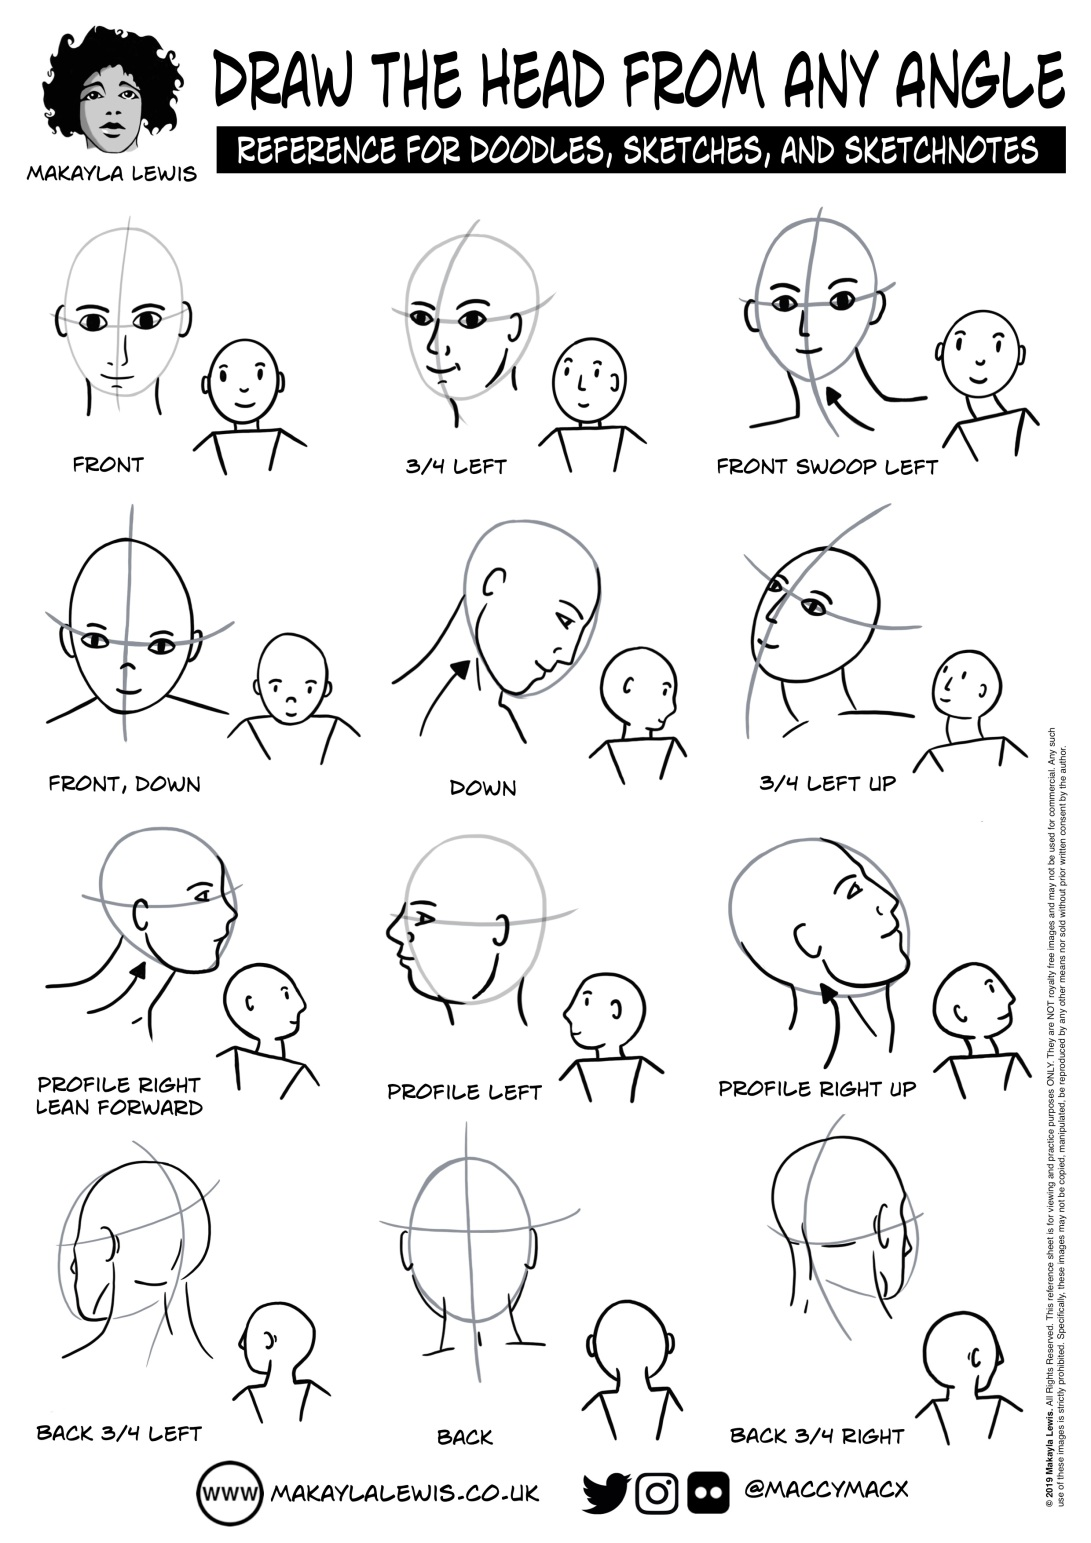 Hand drawing of 24 heads looking in various directions, 12 detailed and 12 doodled